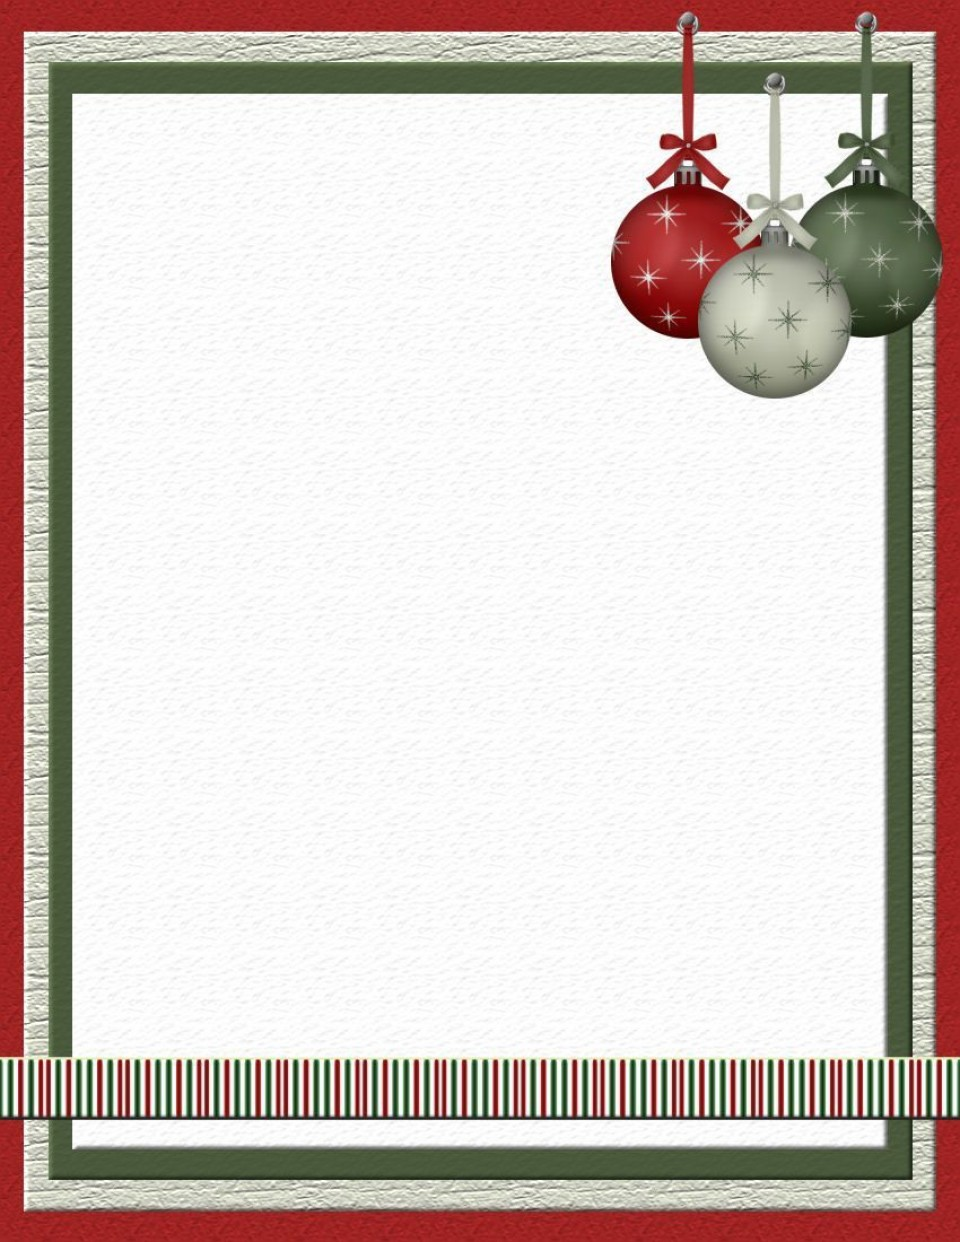 003 Staggering Free Holiday Stationery Template For Word Sample 960